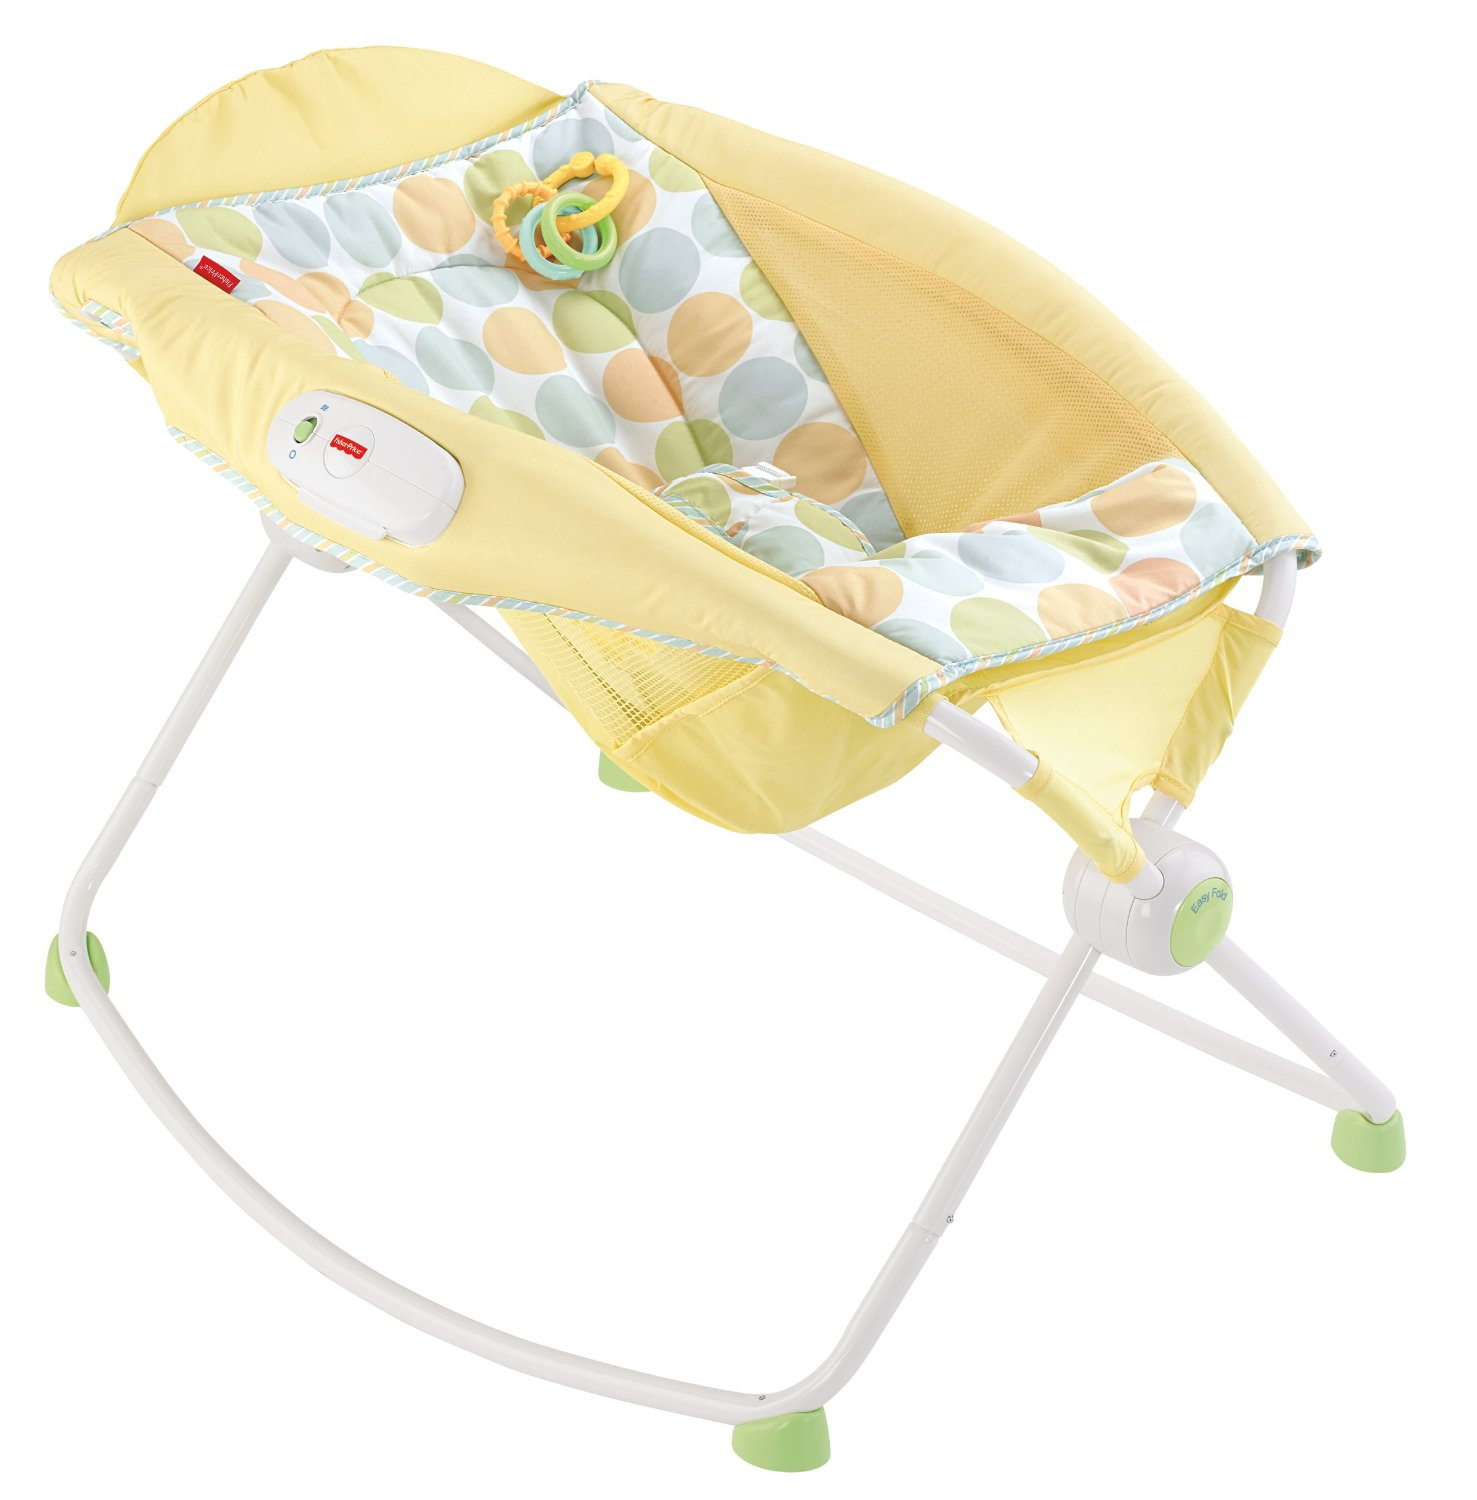 Newborn babies - what you must have! » One Beautiful Home